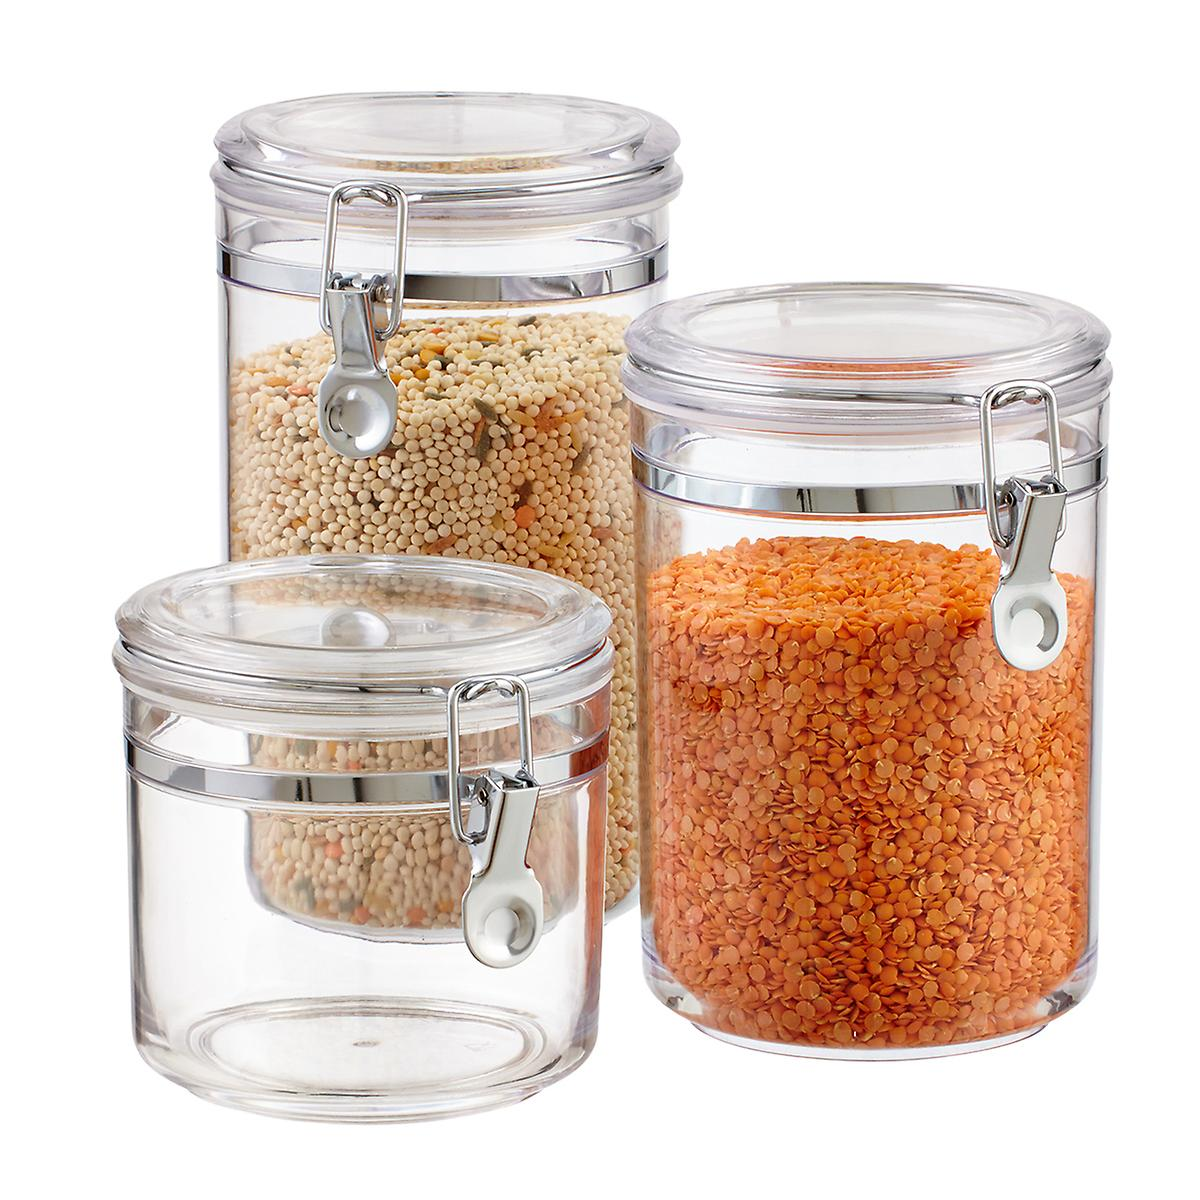 acrylic food storage containers